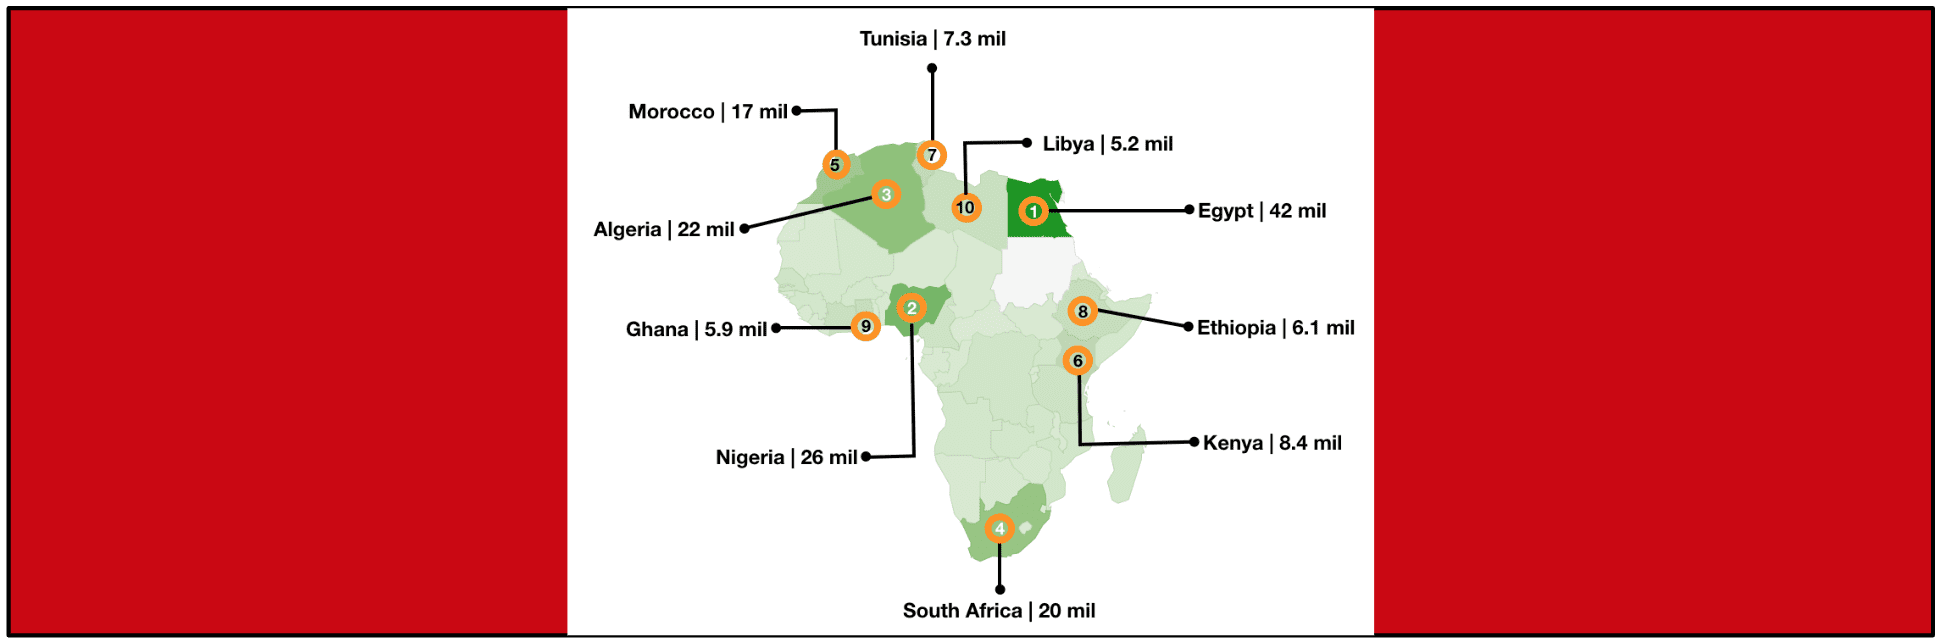 eNitiate | Africa's Top 10 Countries On Facebook | Feature | 13 Mar 2020